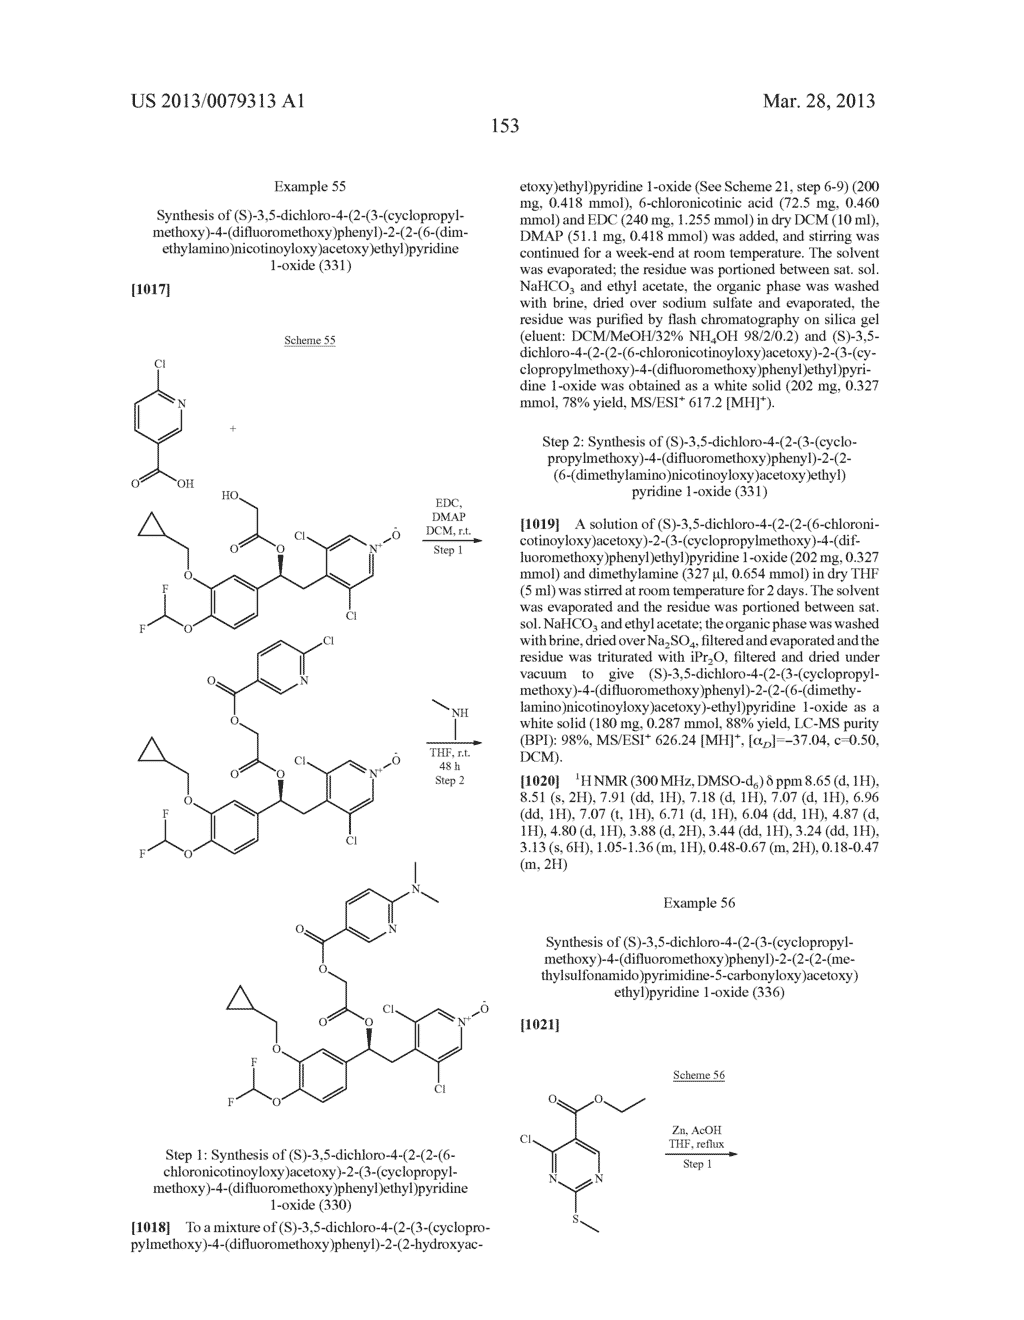 DERIVATIVES OF 1-PHENYL-2-PYRIDINYL ALKYL ALCOHOLS AS PHOSPHODIESTERASE     INHIBITORS - diagram, schematic, and image 154